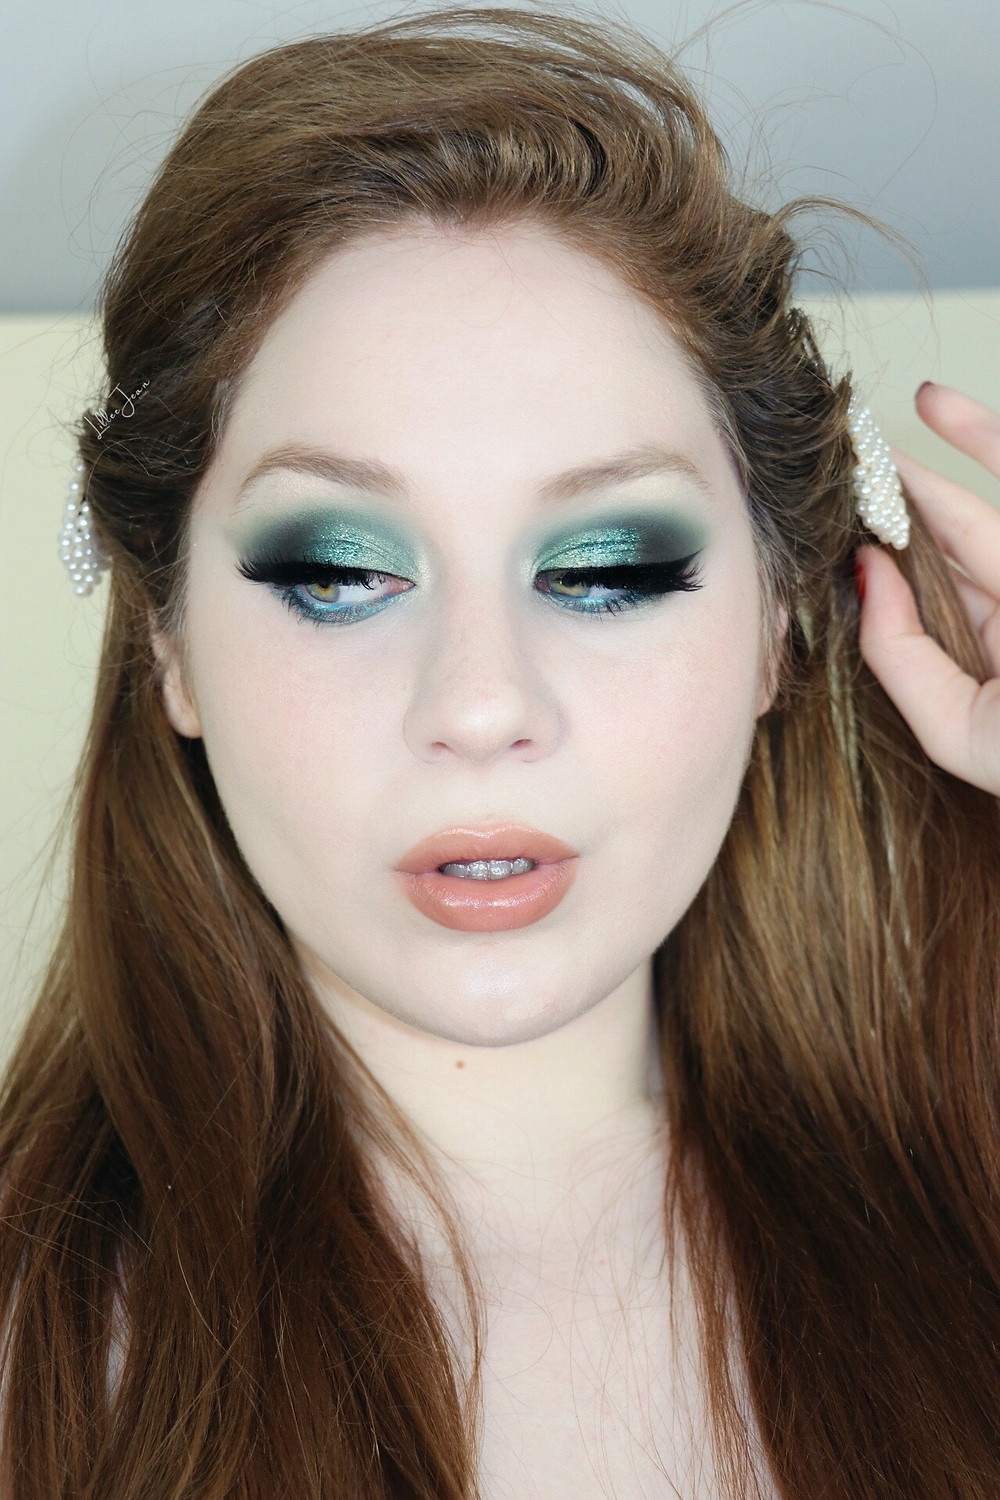 GRWM Makeup Revolution Chilled GLITTERY Teal Smokey Makeup (INVISALIGN) Tutorial 2021 | Lillee Jean